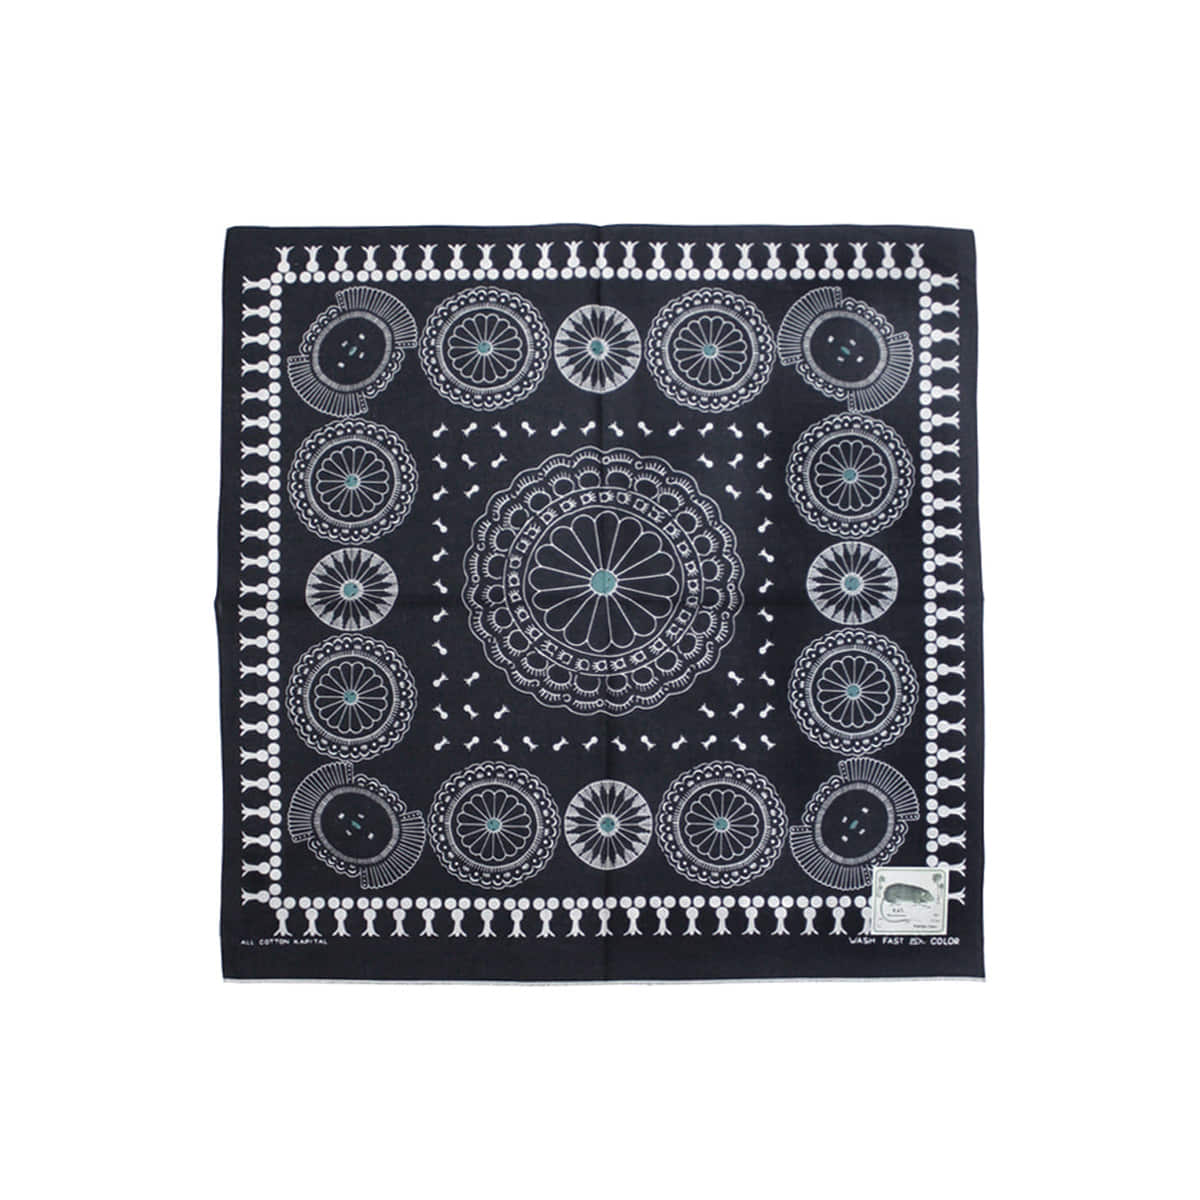 [KAPITAL] FAST COLOR SELVEDGE BANDANA (CONCHO) 'BLACK'